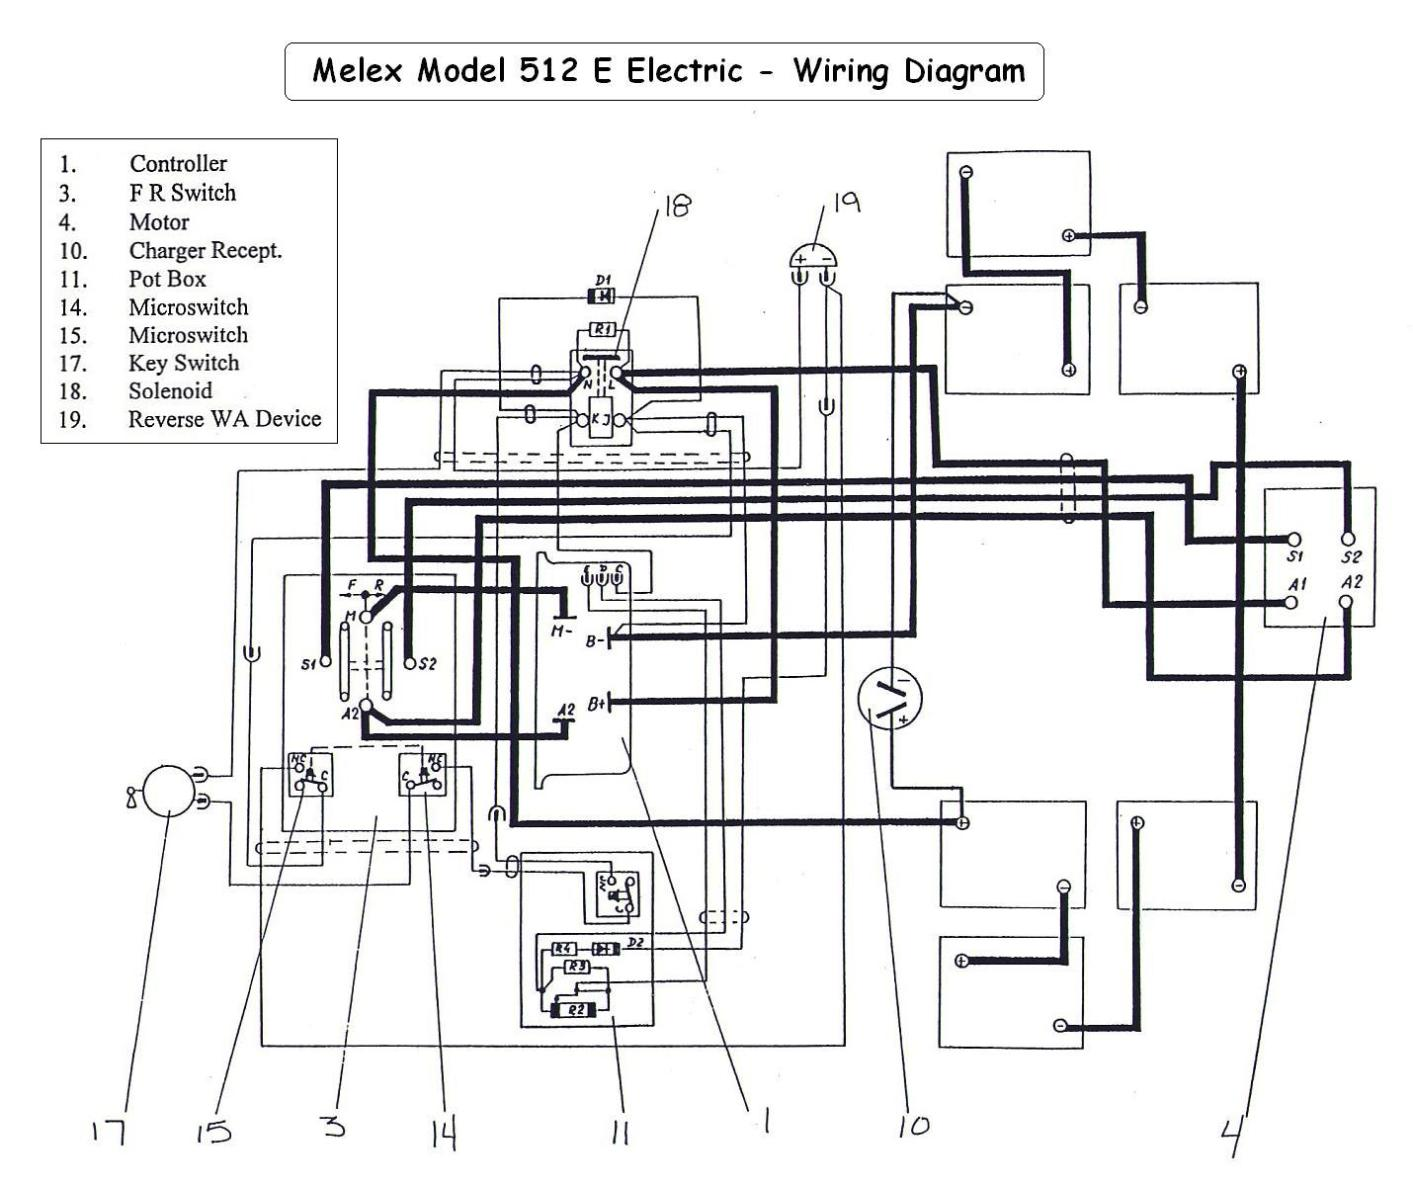 Ezgo Txt Battery Wiring Diagram moreover Curtis Controller The Wiring Diagram Pdf also Car Schematic Diagram together with Curtis Battery Meter Wiring Diagram also 1983 Club Car 36 Volt Wiring Diagram. on curtis dc motor controller wiring diagram